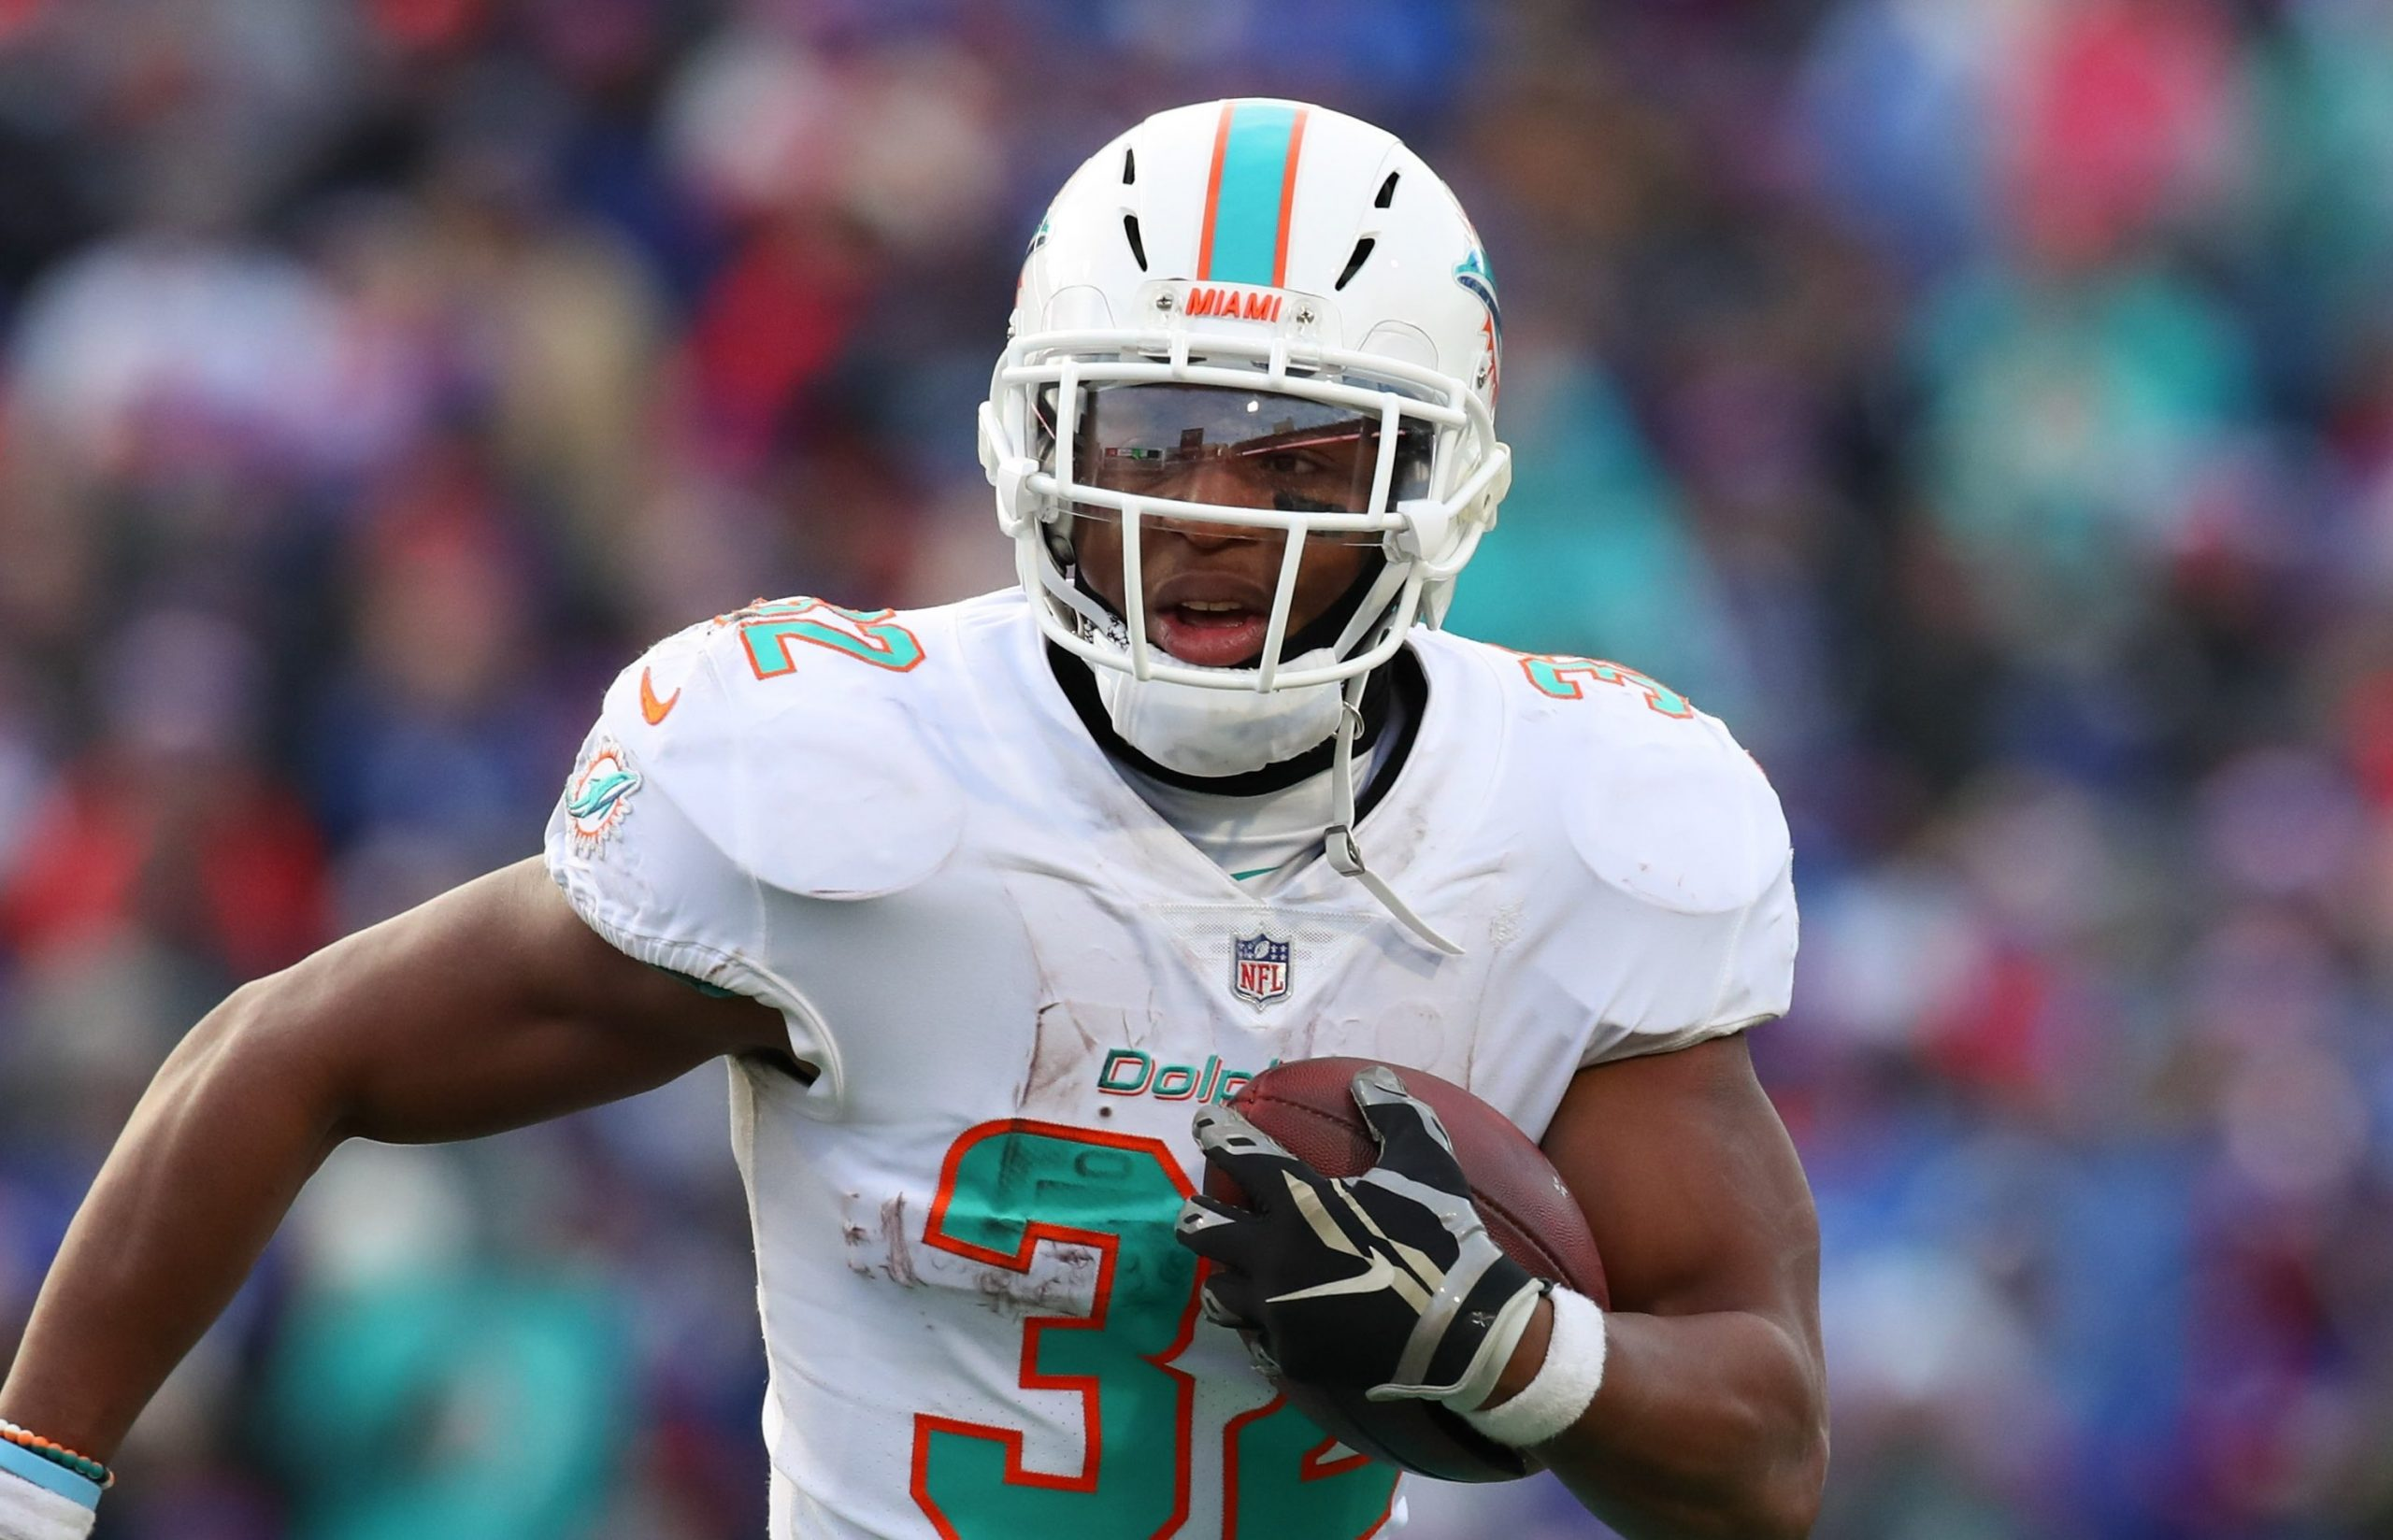 What Are The Miami Dolphins Odds Of Winning Super Bowl Liv? within Odds Miami Dolphins Win Super Bowl